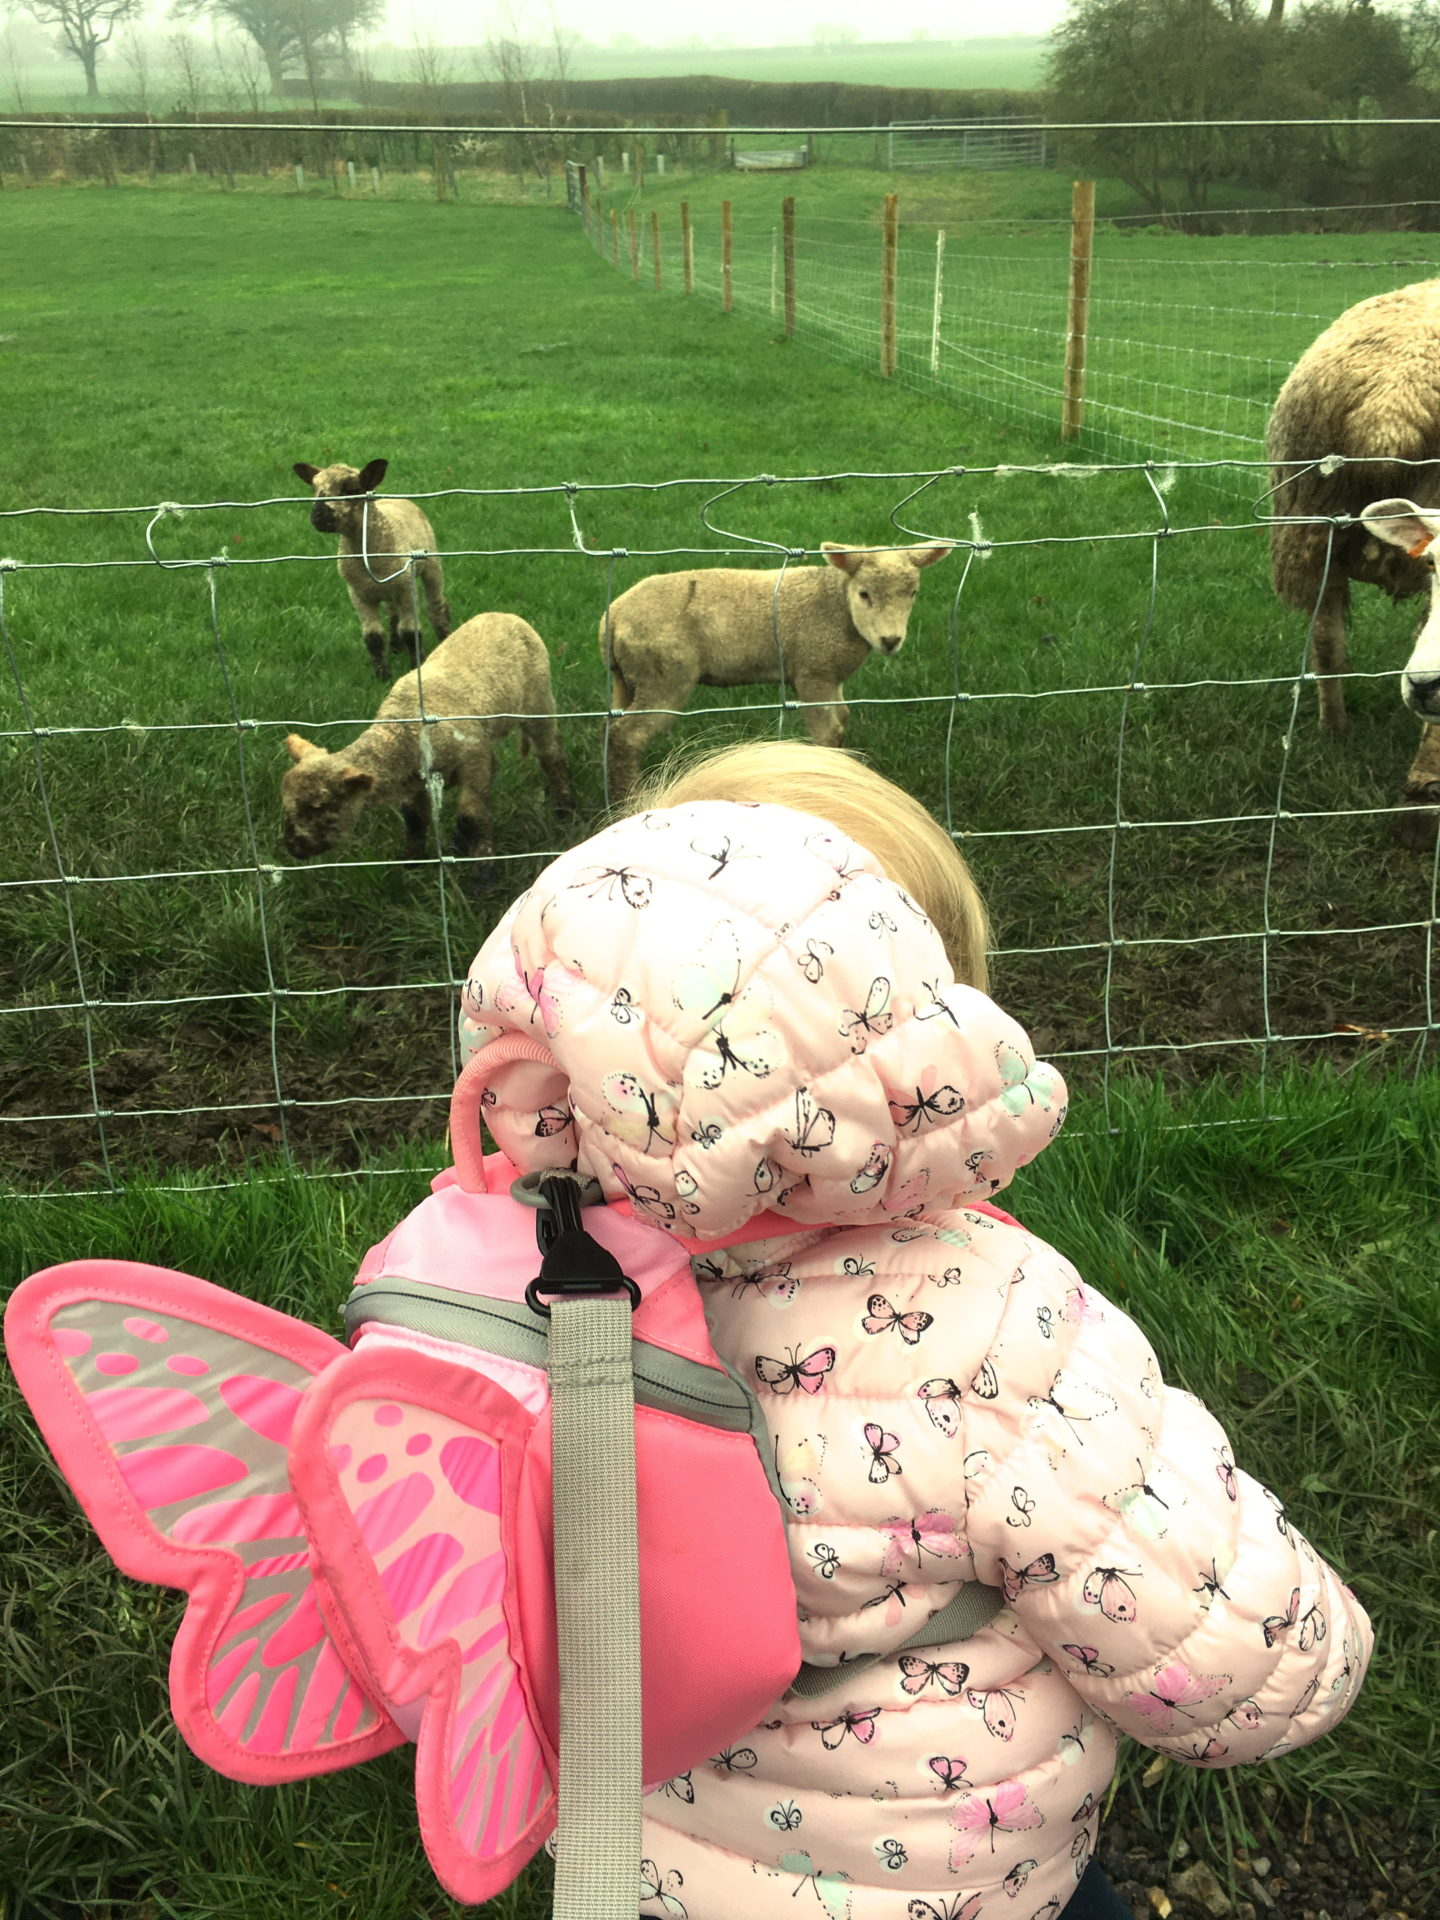 14 month old girl with back to the camera, looking at a field of sheep and lambs